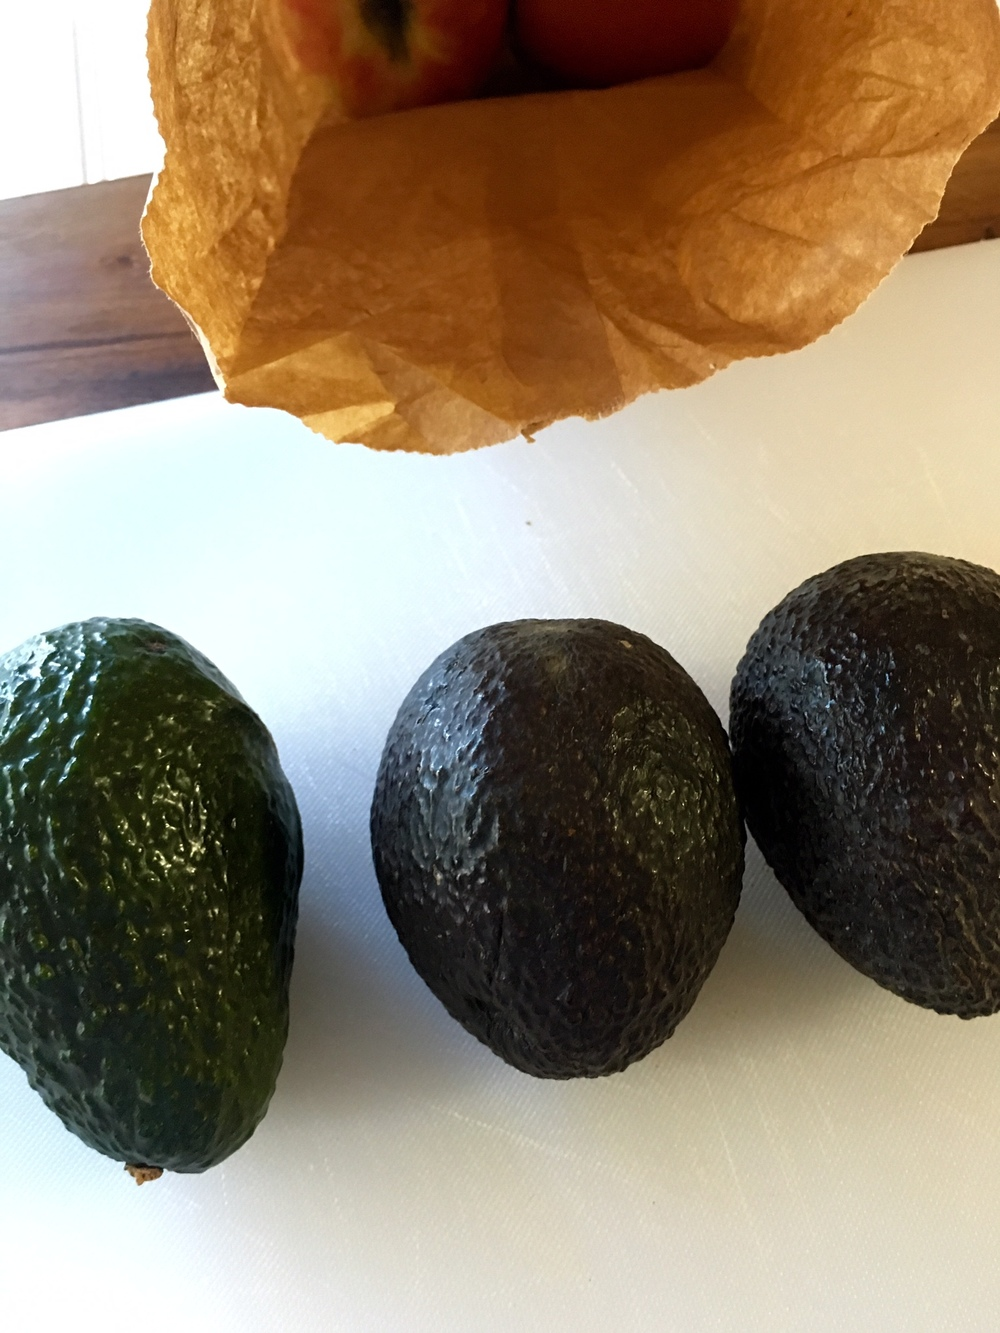 how to store open avocado